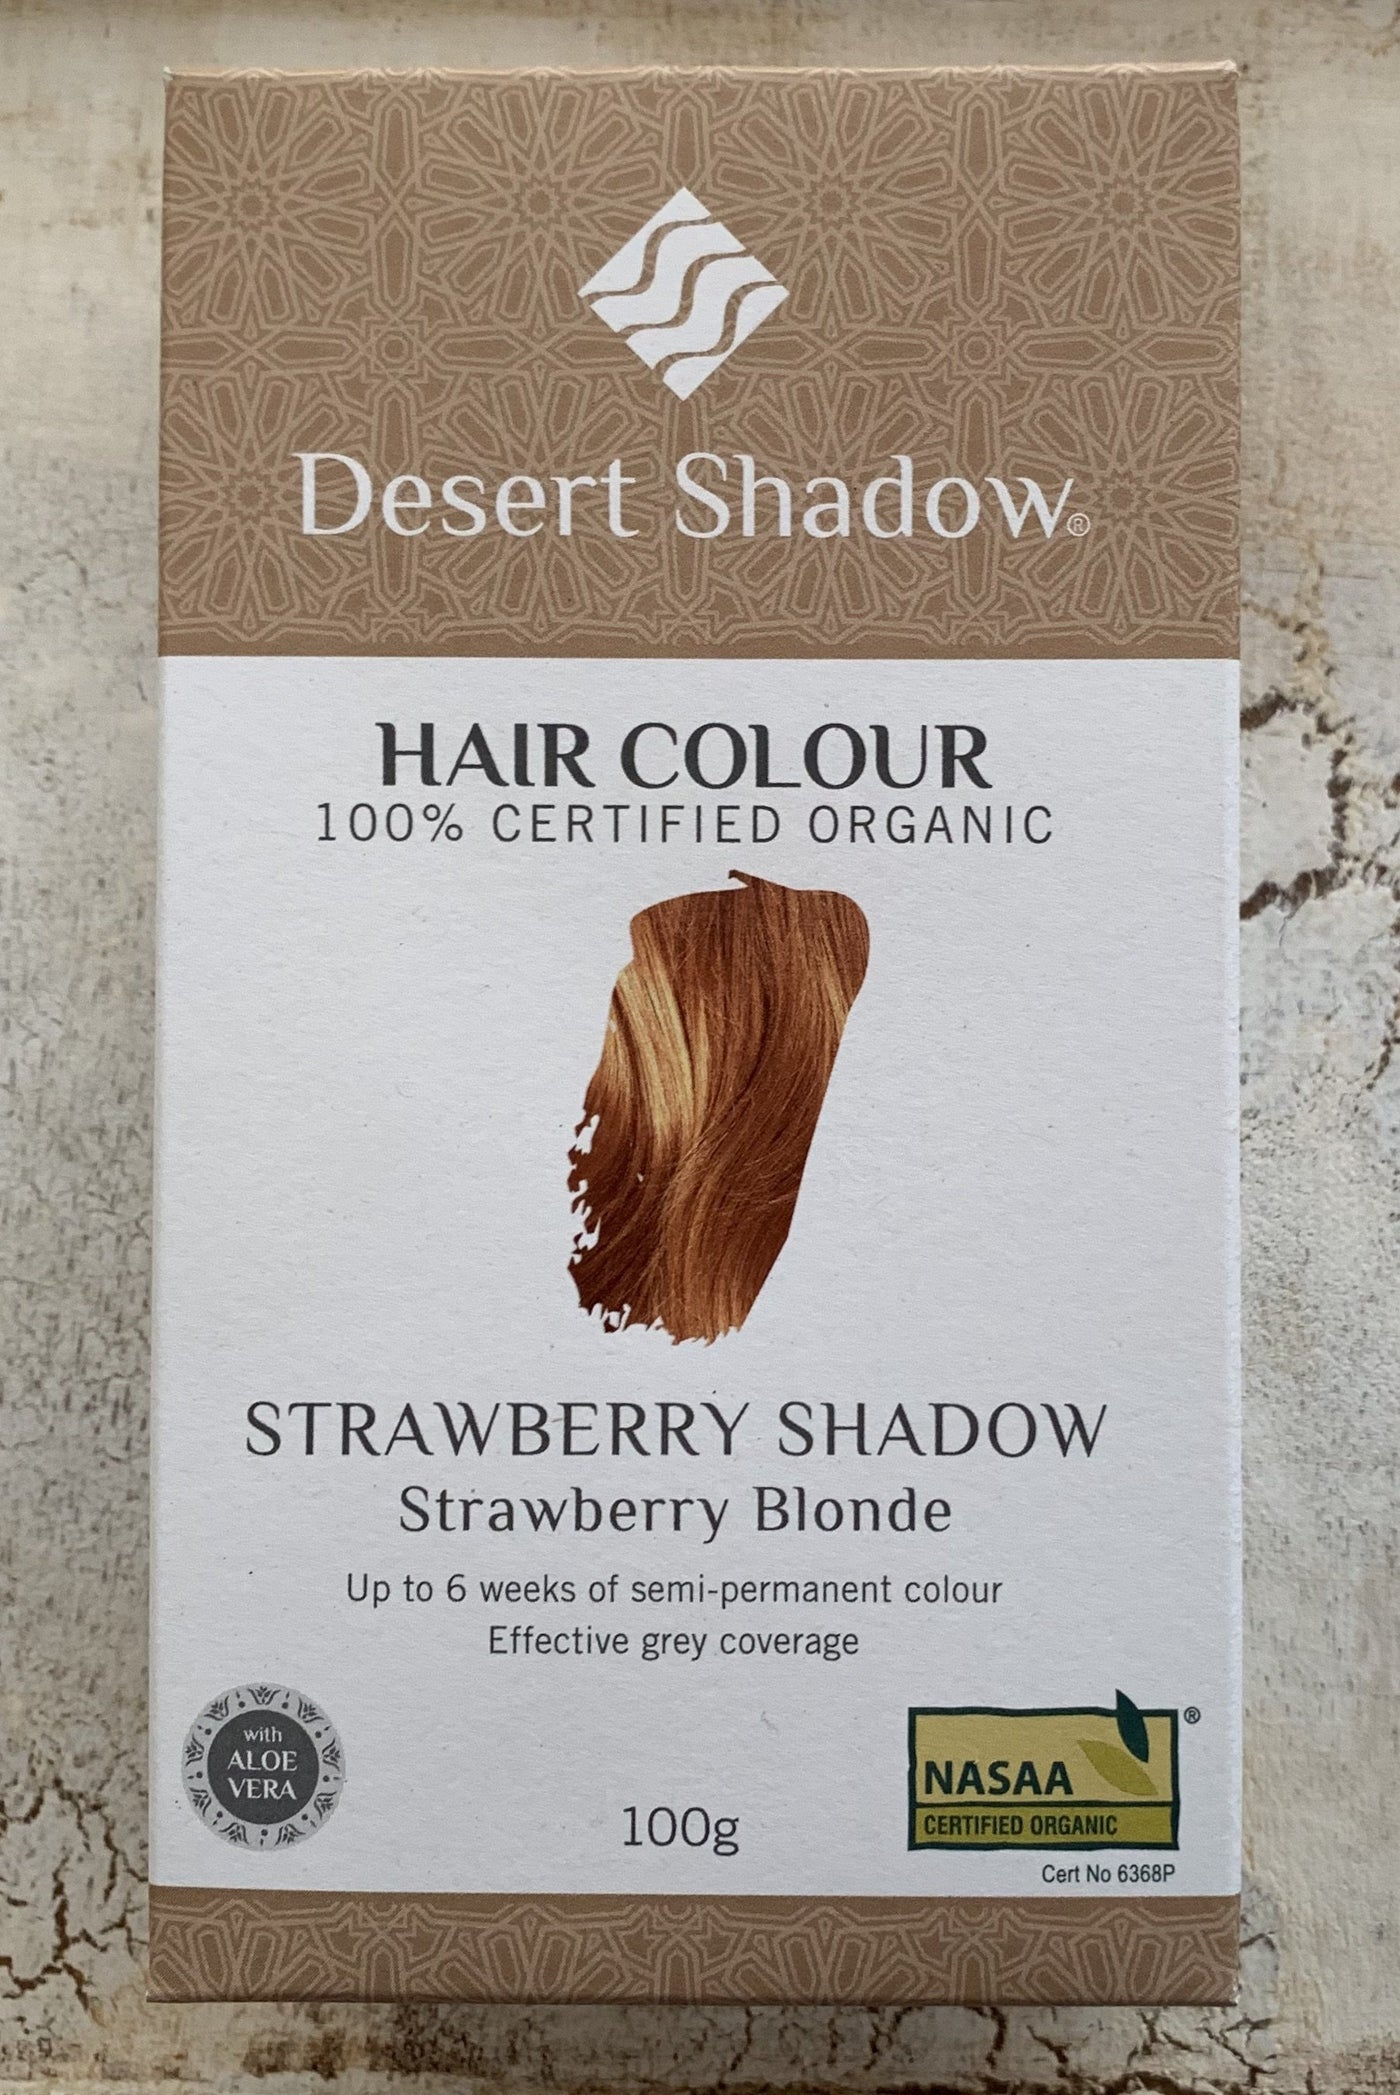 Desert Shadow 100% Certified Organic Hair Dye  - Strawberry Shadow 100g